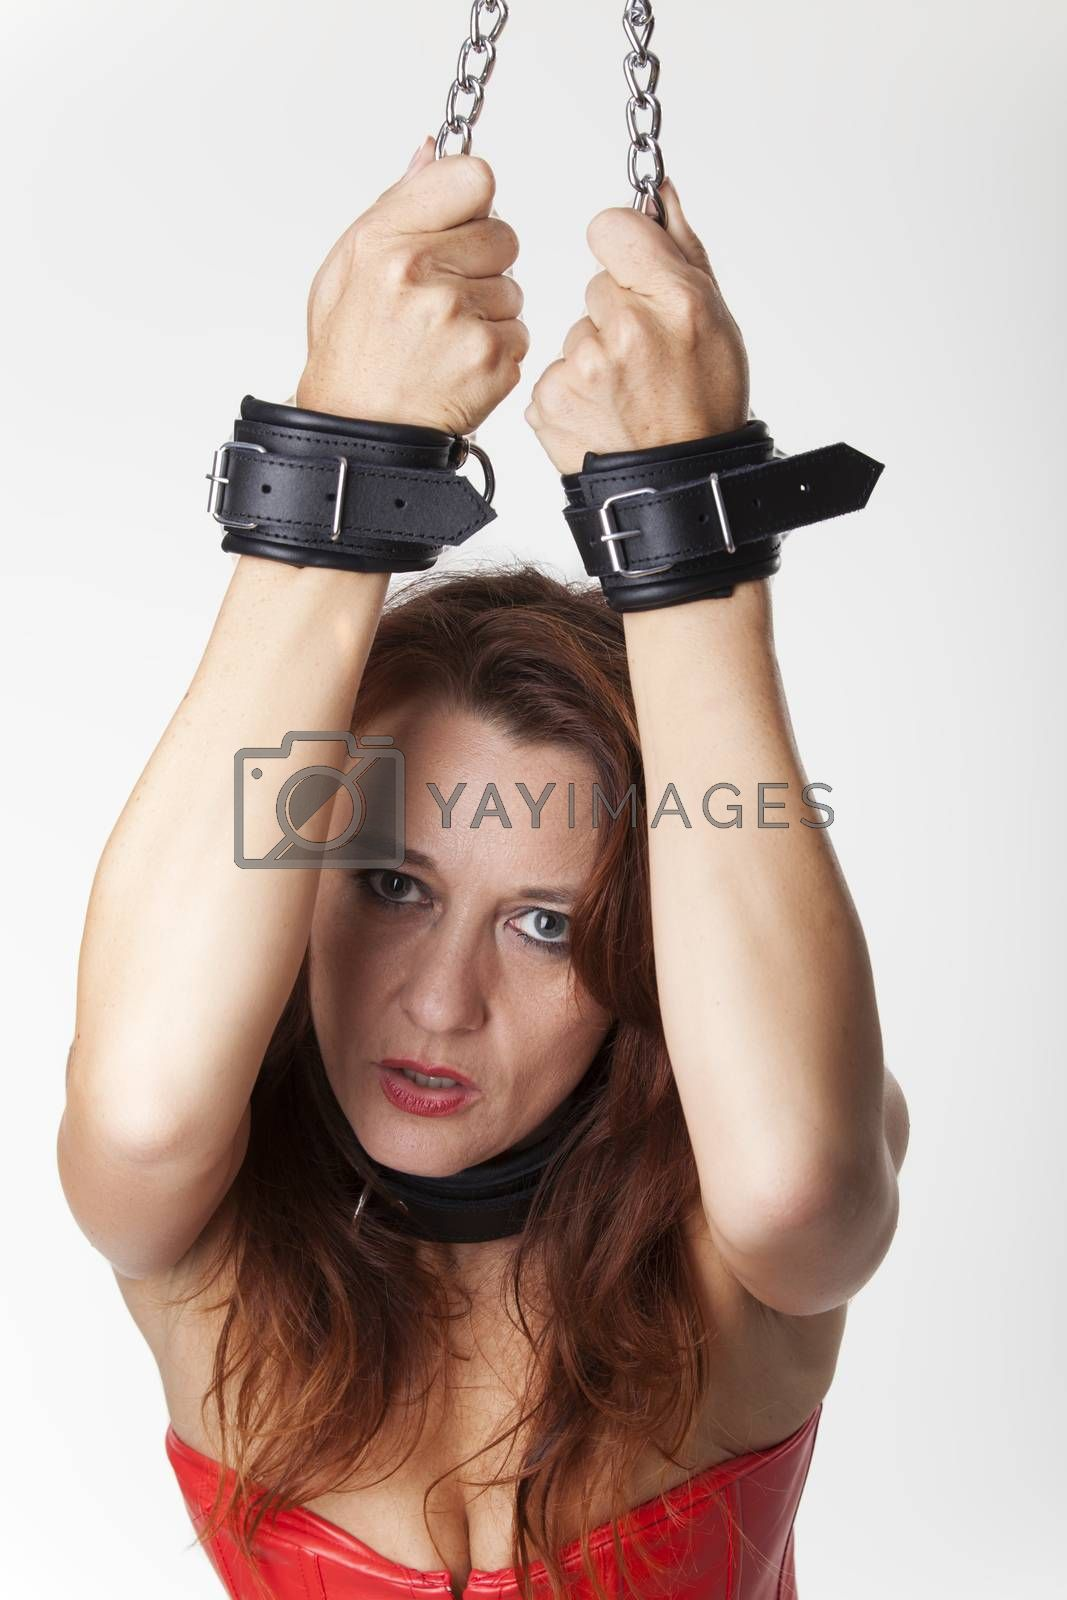 bound standing woman on white